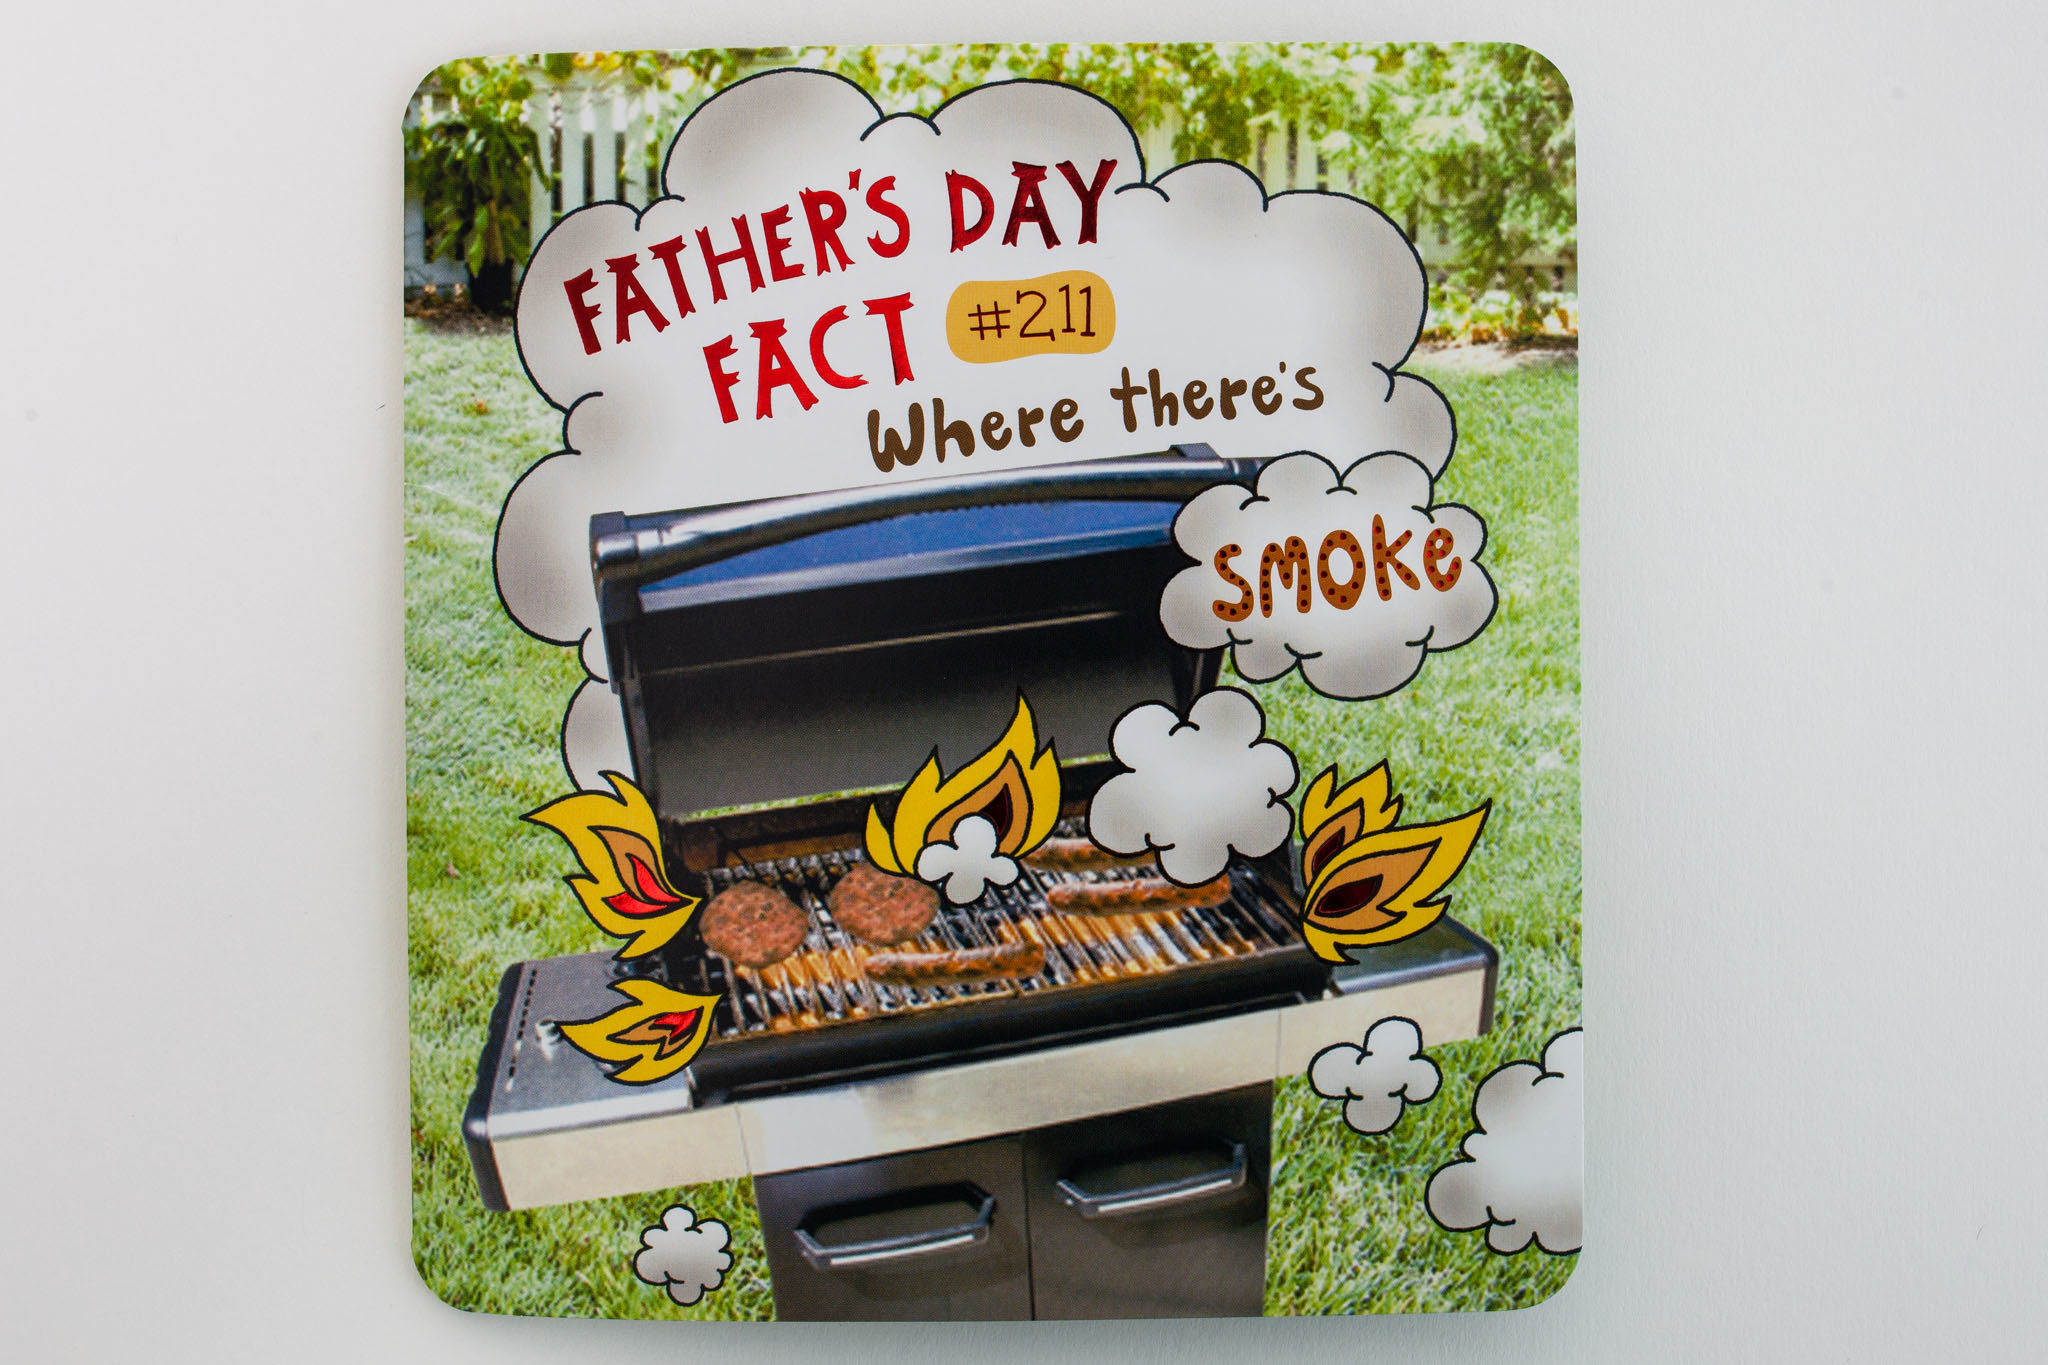 Father's Day card clichés